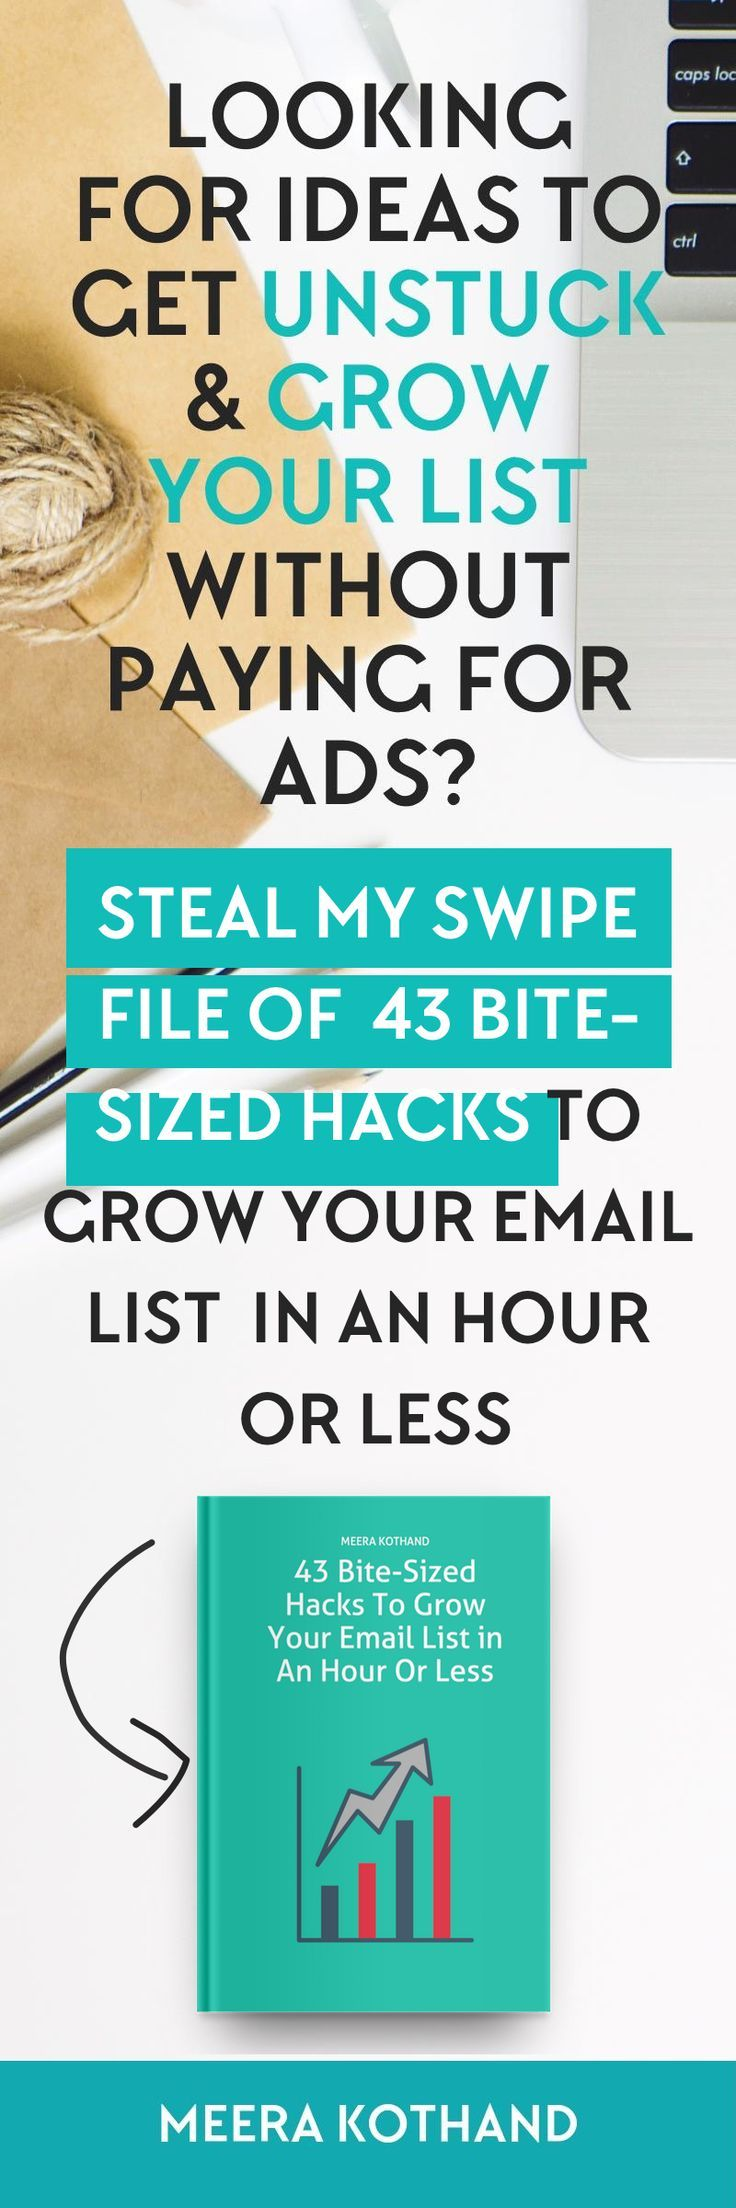 Looking for new ideas to grow your email list without paying for ads?  Steal my swipe file of 43 quick and easy to implement email list growth ideas that will grow your list on less than an hour a day.